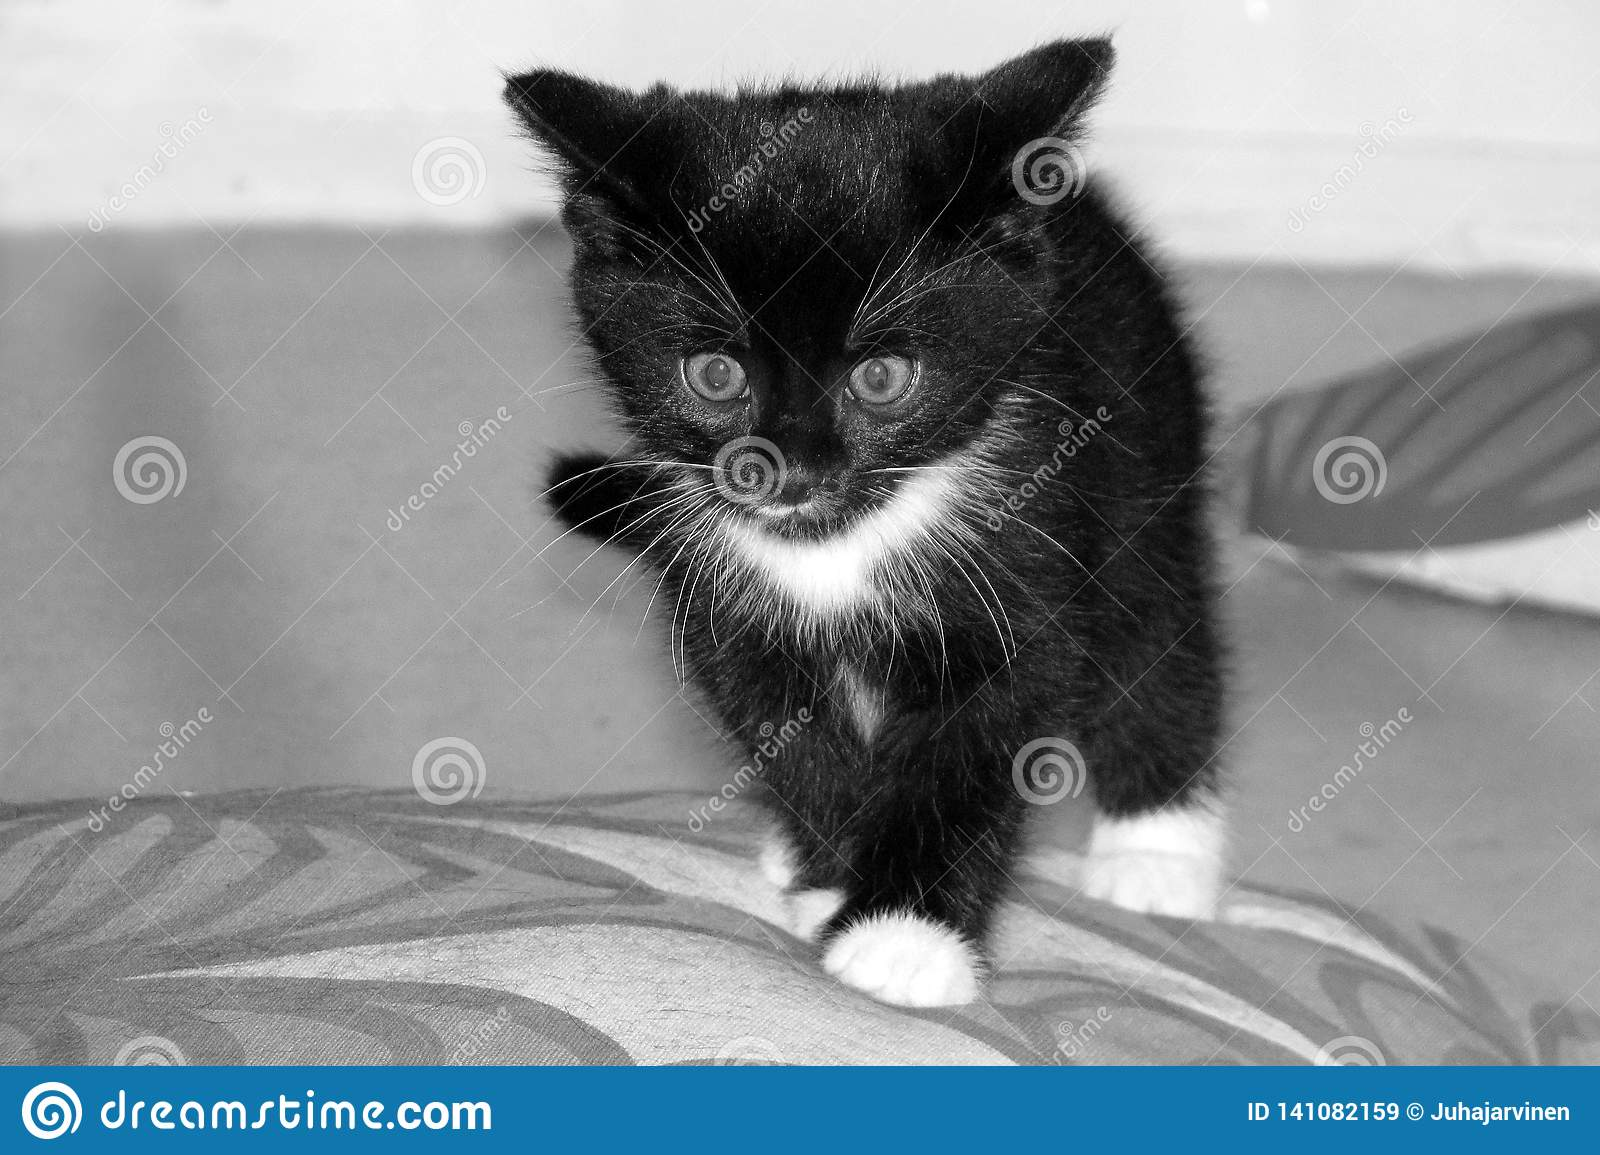 66 643 Black Cute Kitten White Photos Free Royalty Free Stock Photos From Dreamstime